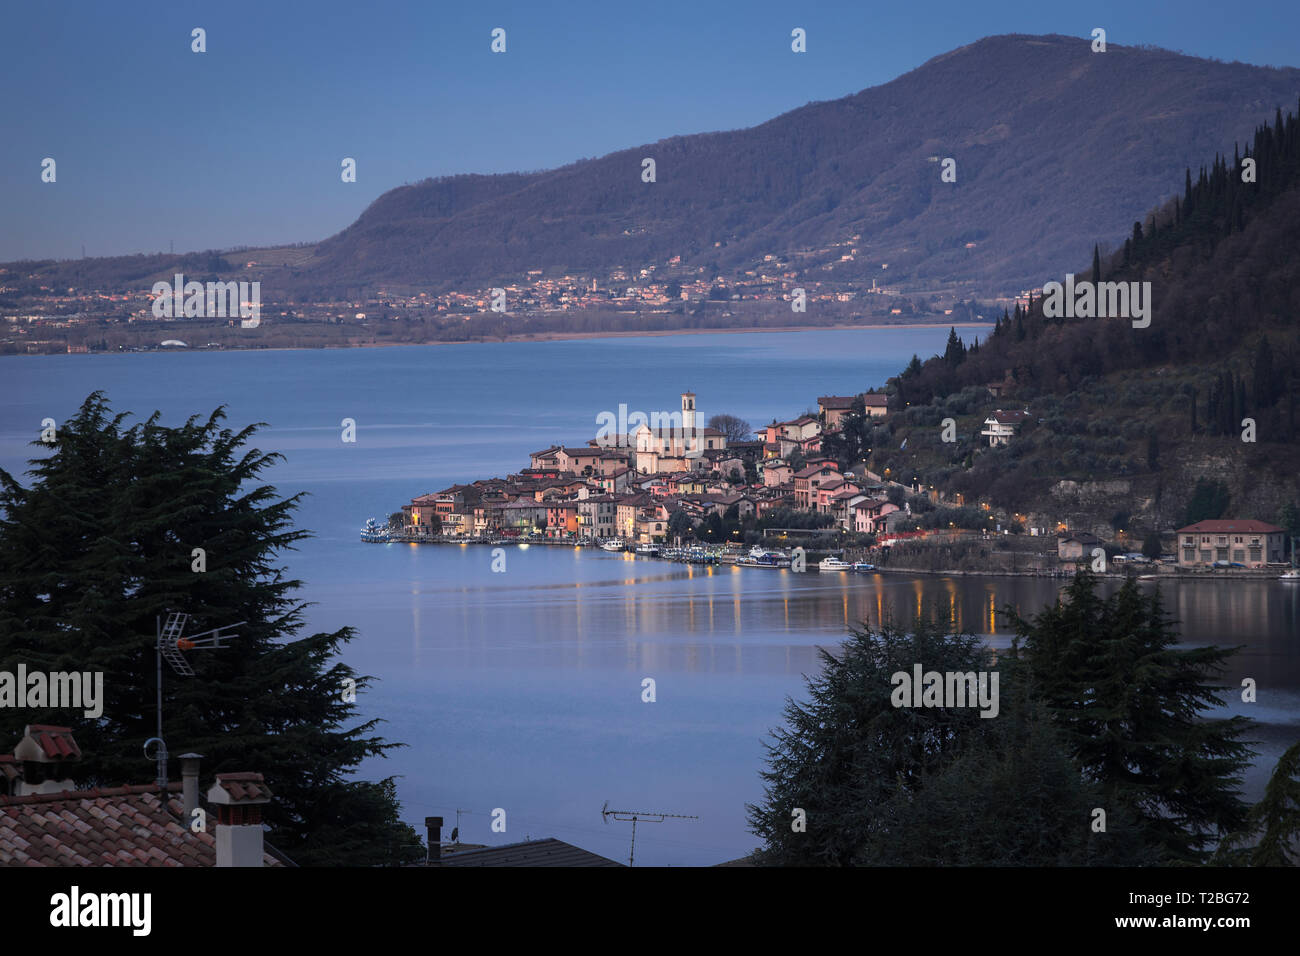 Lake Iseo with the town of Peschiera Maraglio on Monte Isola at down, Lombardy, Italy - Stock Image